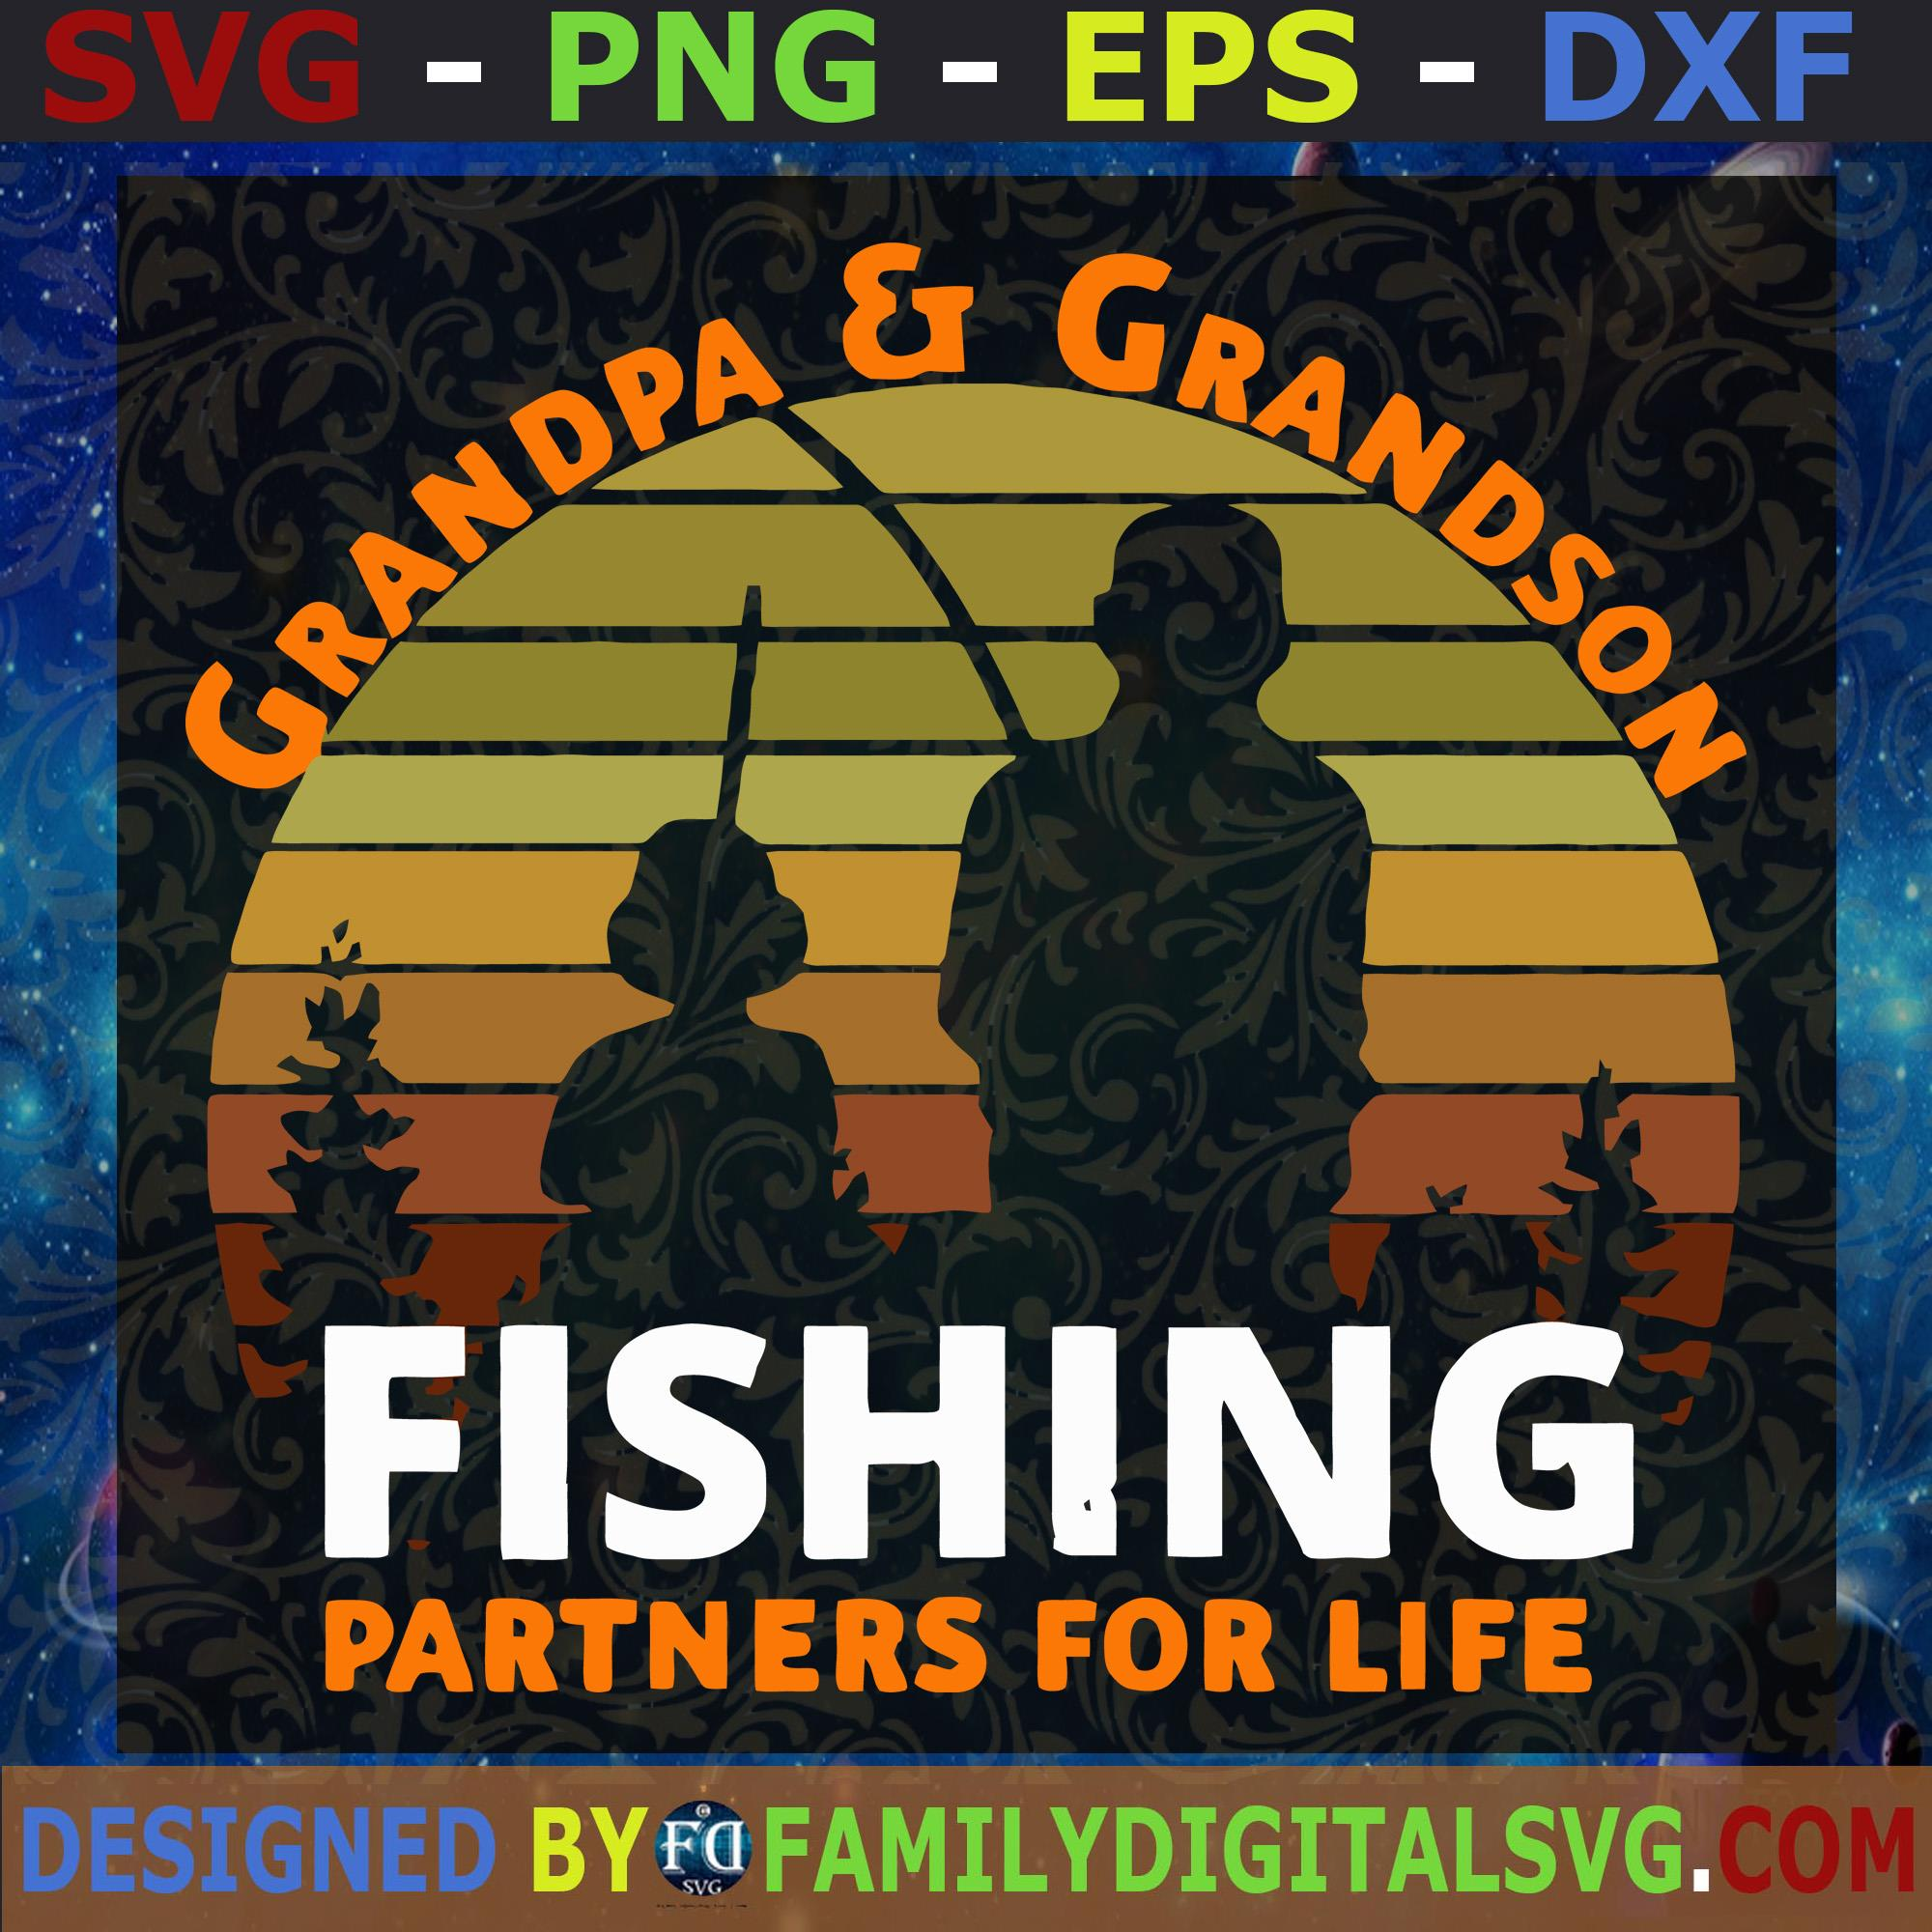 Download Father And Son Fishing Svg File Grandpa And Grandson Fishing Svg Vector Art Commercial Personal Use Cricut Cameo Silhouette Vinyl Cut Svg Png Eps Dxf Silhouette Cut Files For Cricut Instant Download Vector Download